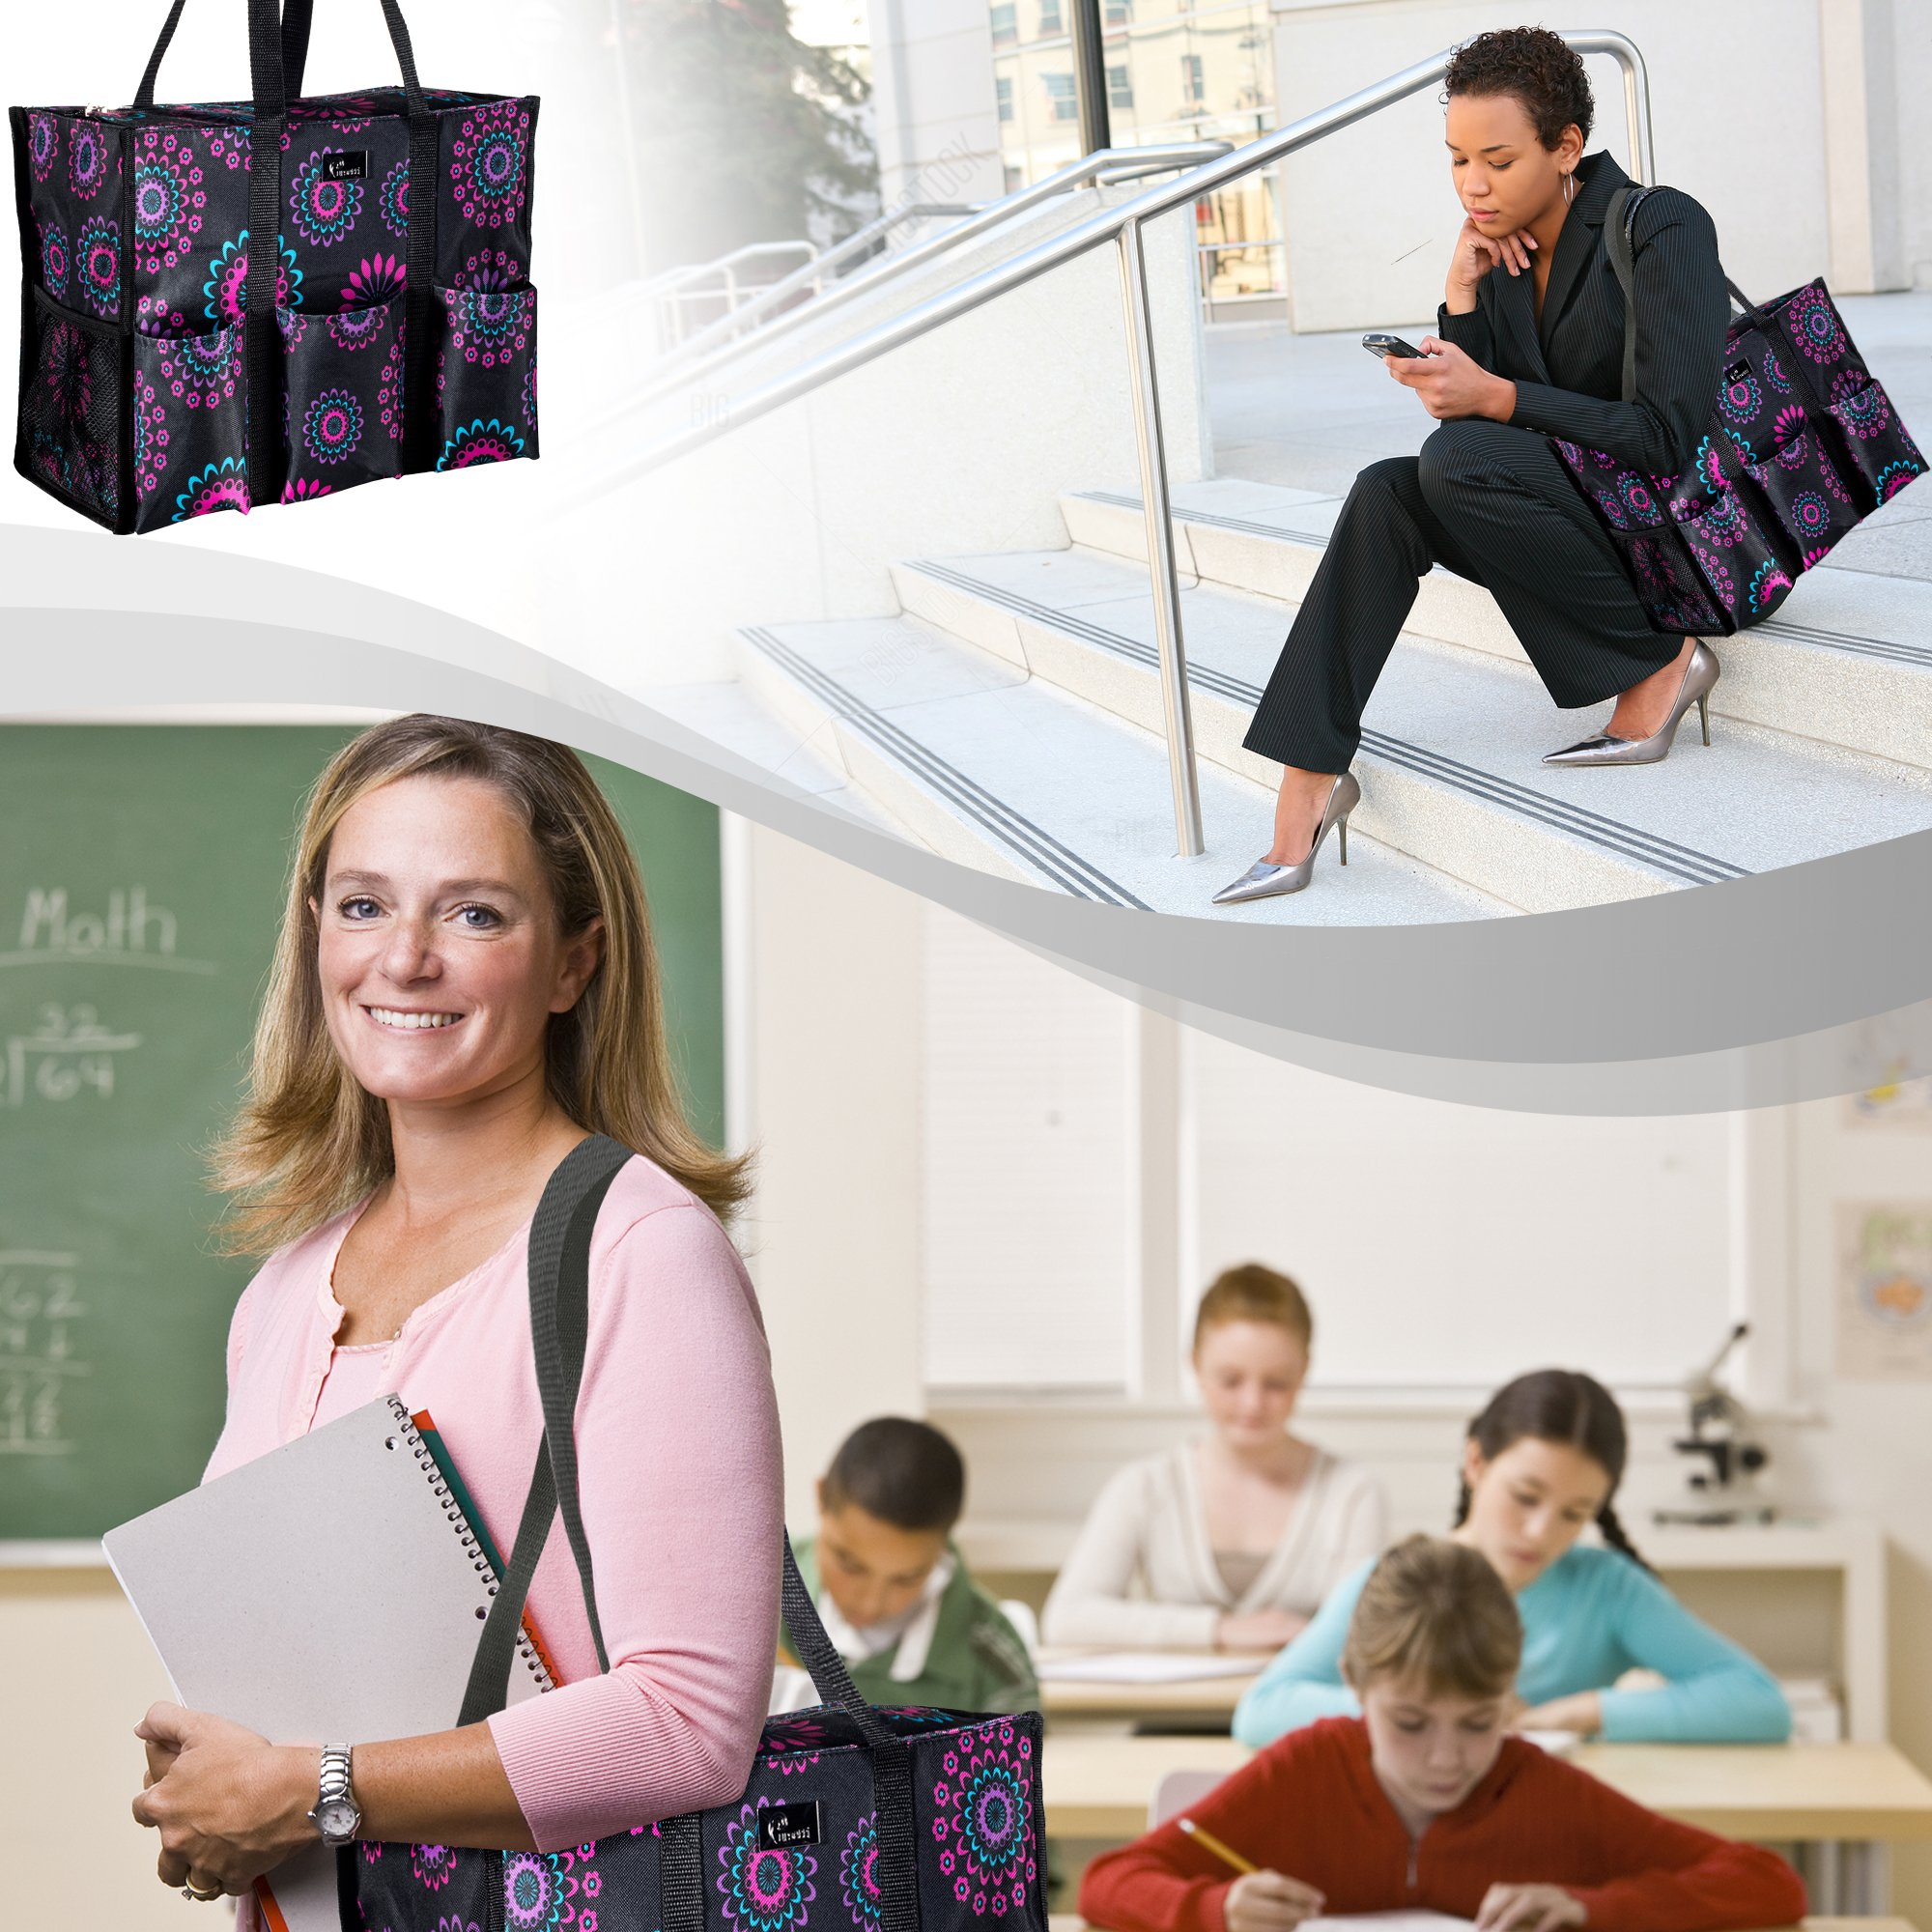 Pursetti Zip-Top Organizing Utility Tote Bag (Purple Circle_L) with Multiple Exterior & Interior Pockets for Working Women, Nurses, Teachers and Soccer Moms by Pursetti (Image #5)